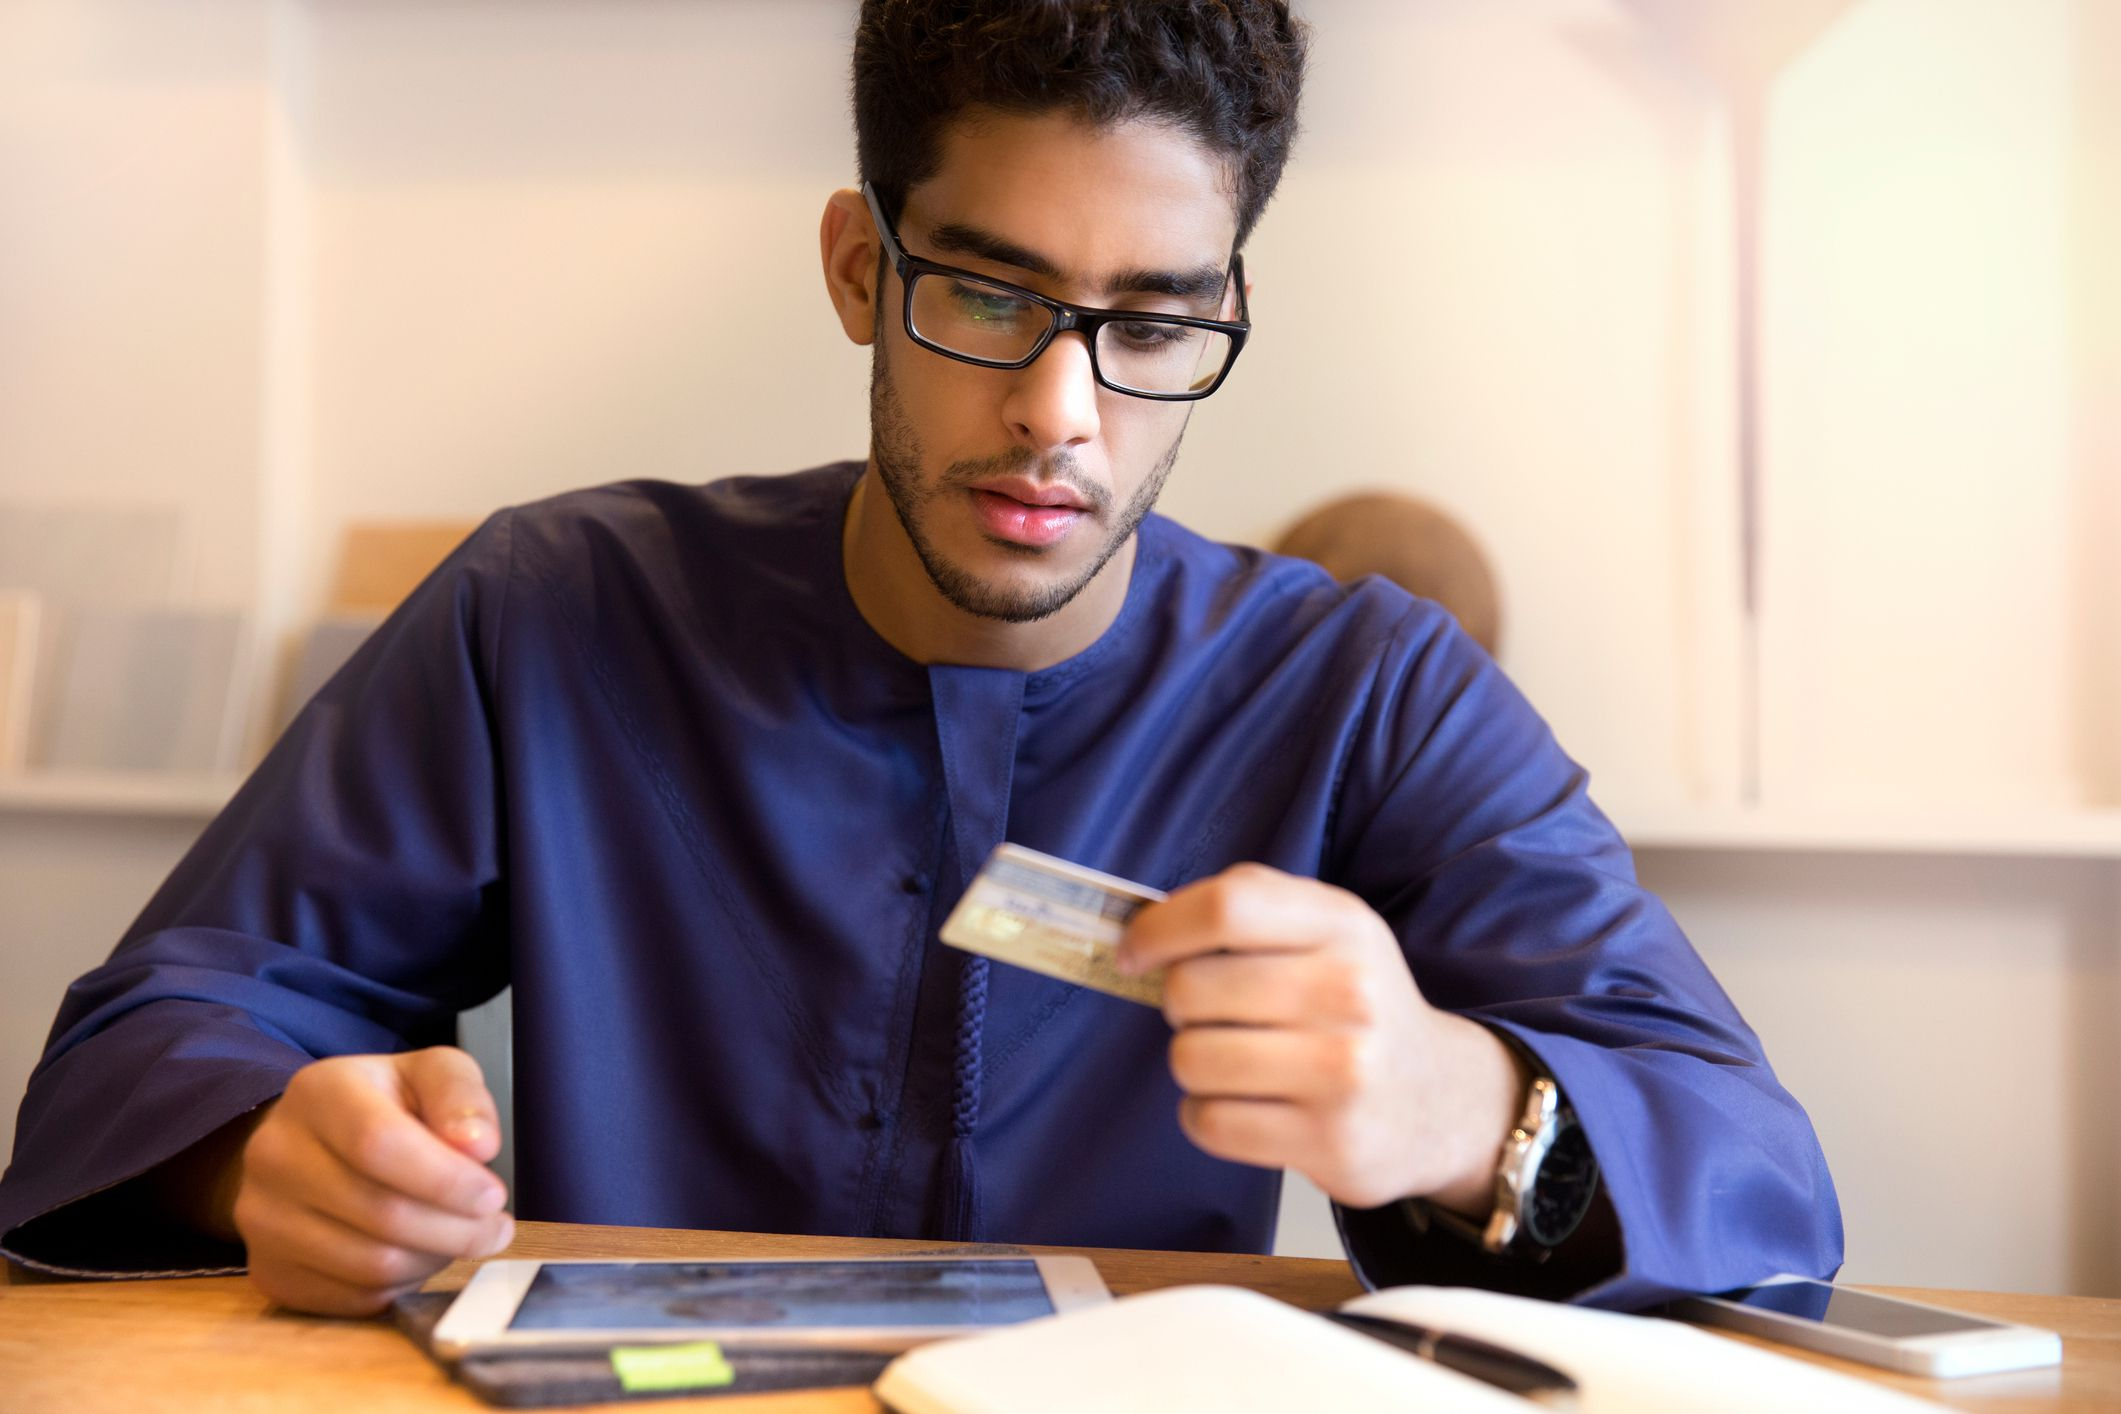 The Best Credit Cards for People Who Are Bad With Money